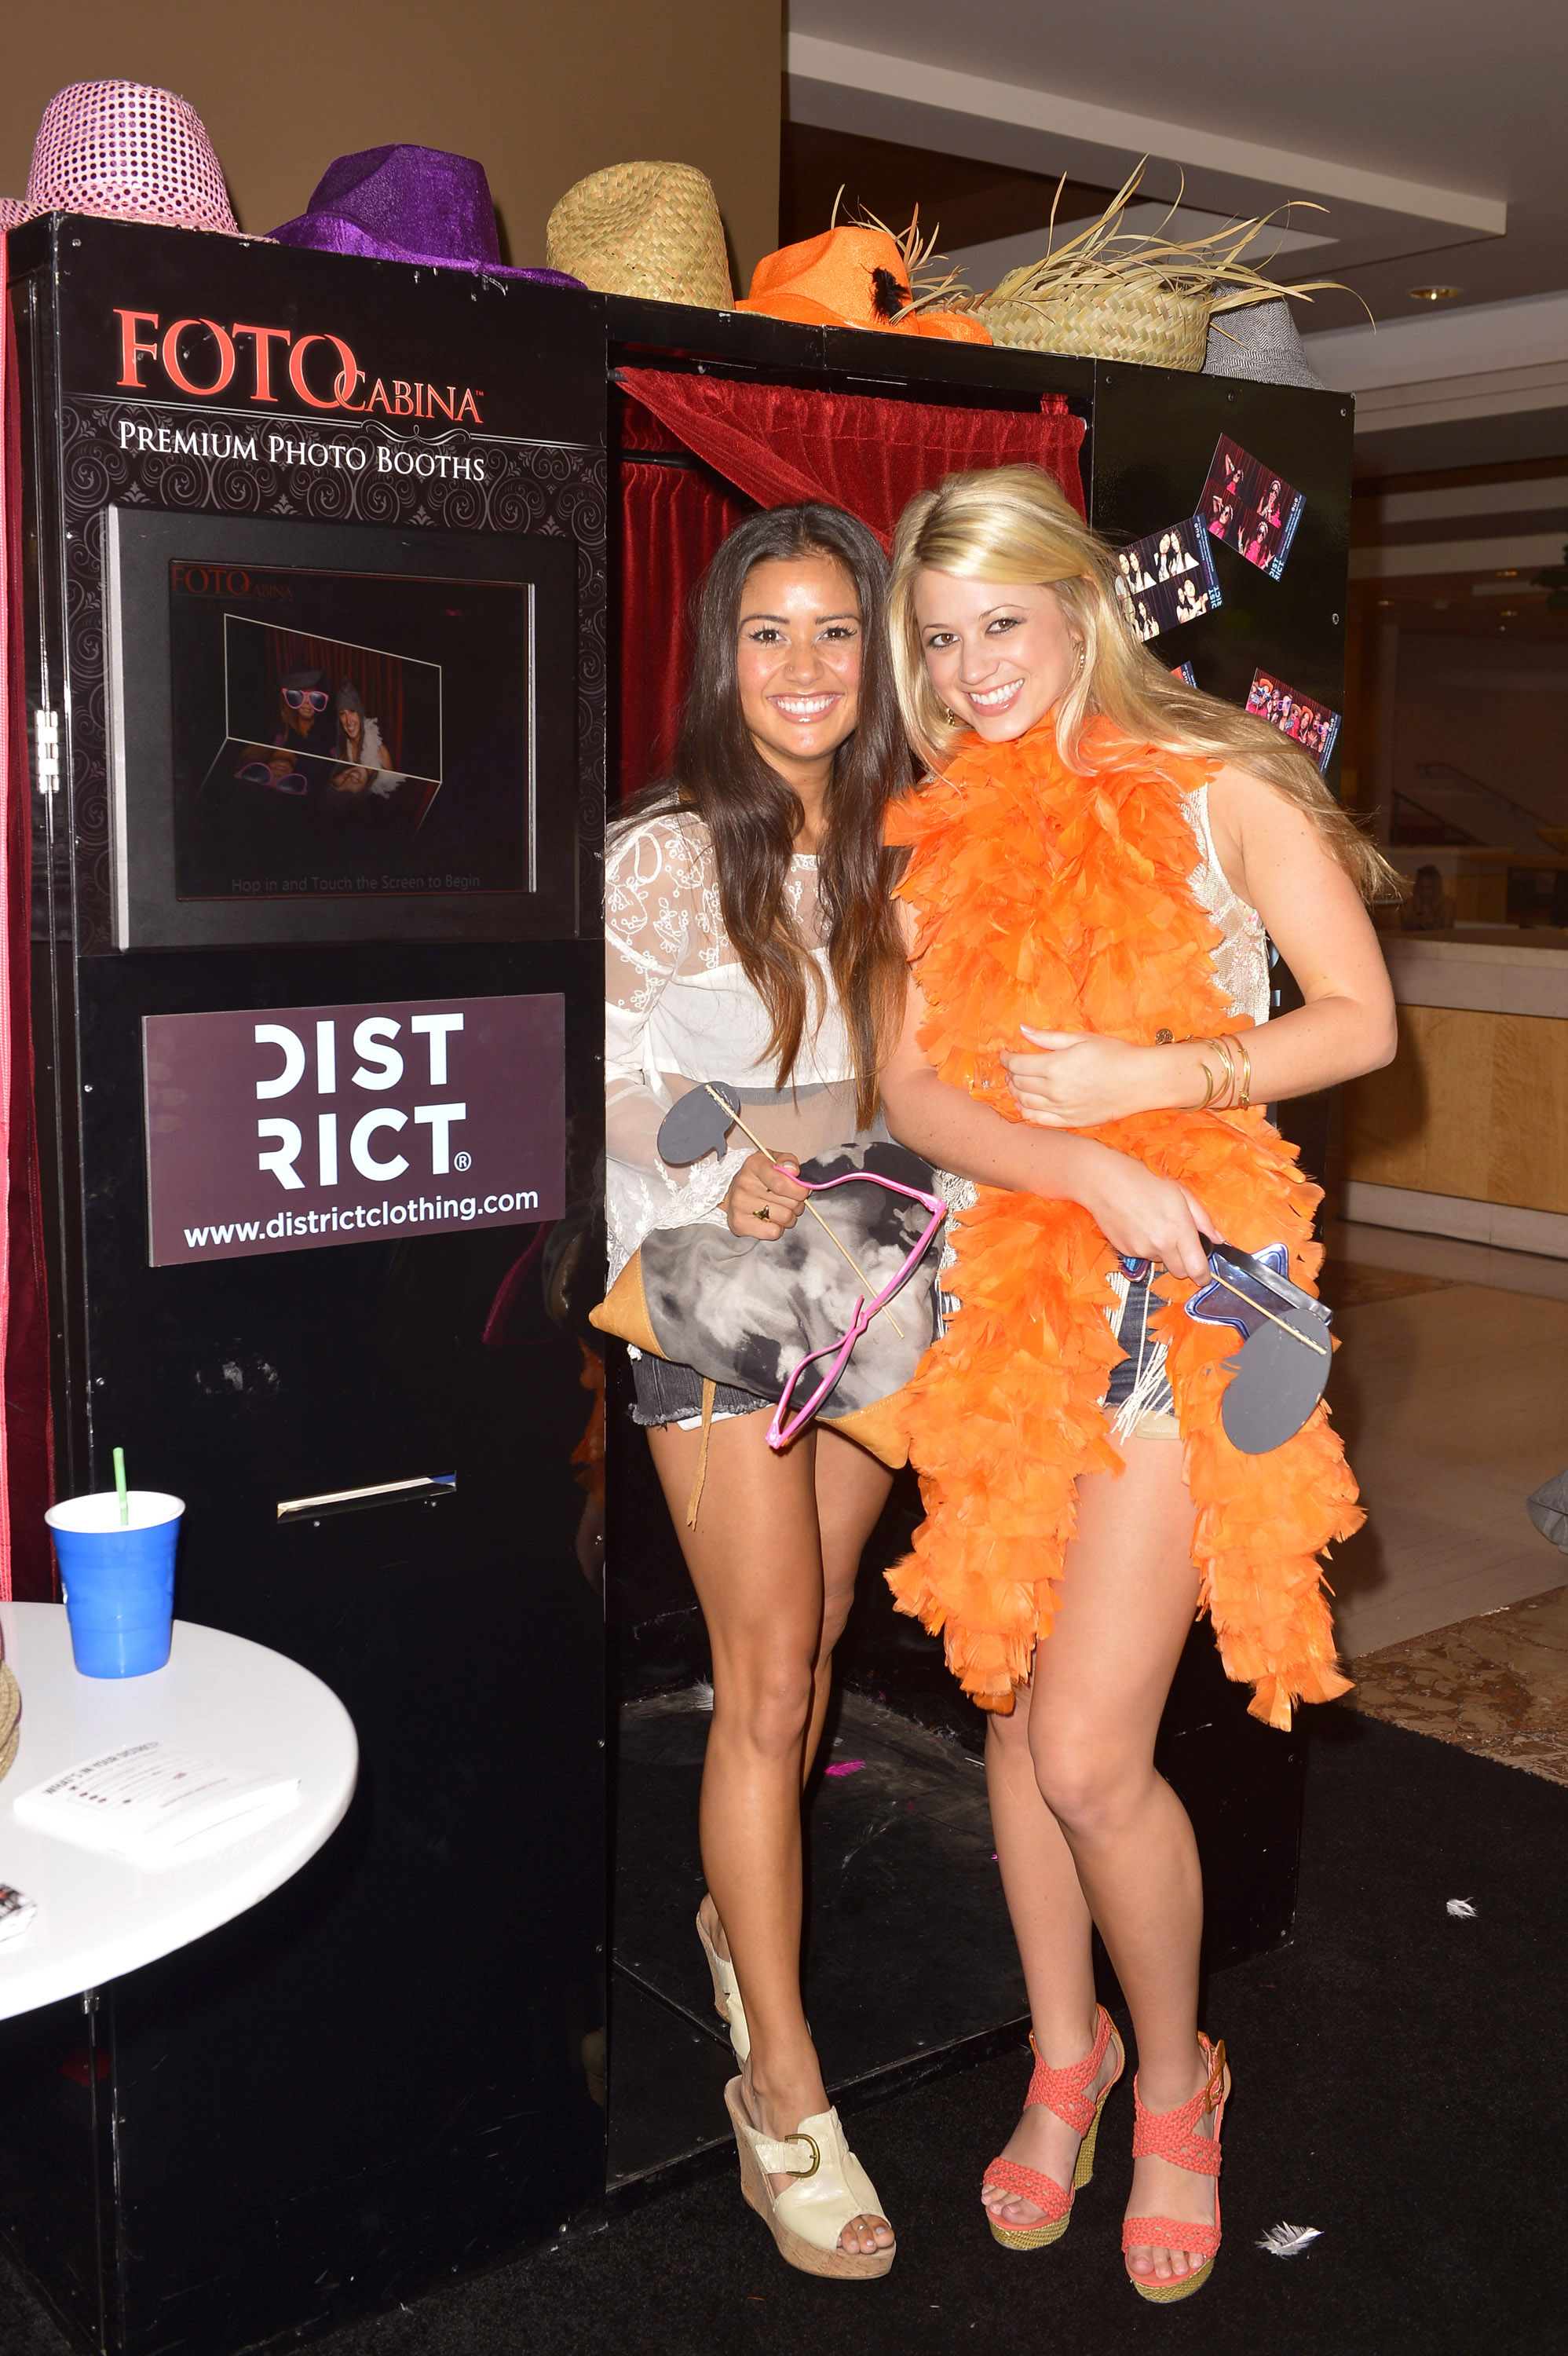 Catherine Giudici and Lesley Murphy at the Hard Rock Music Lounge Fools Gold Sunset Party April 14 in Palm Spring, Calif., during Coachella.